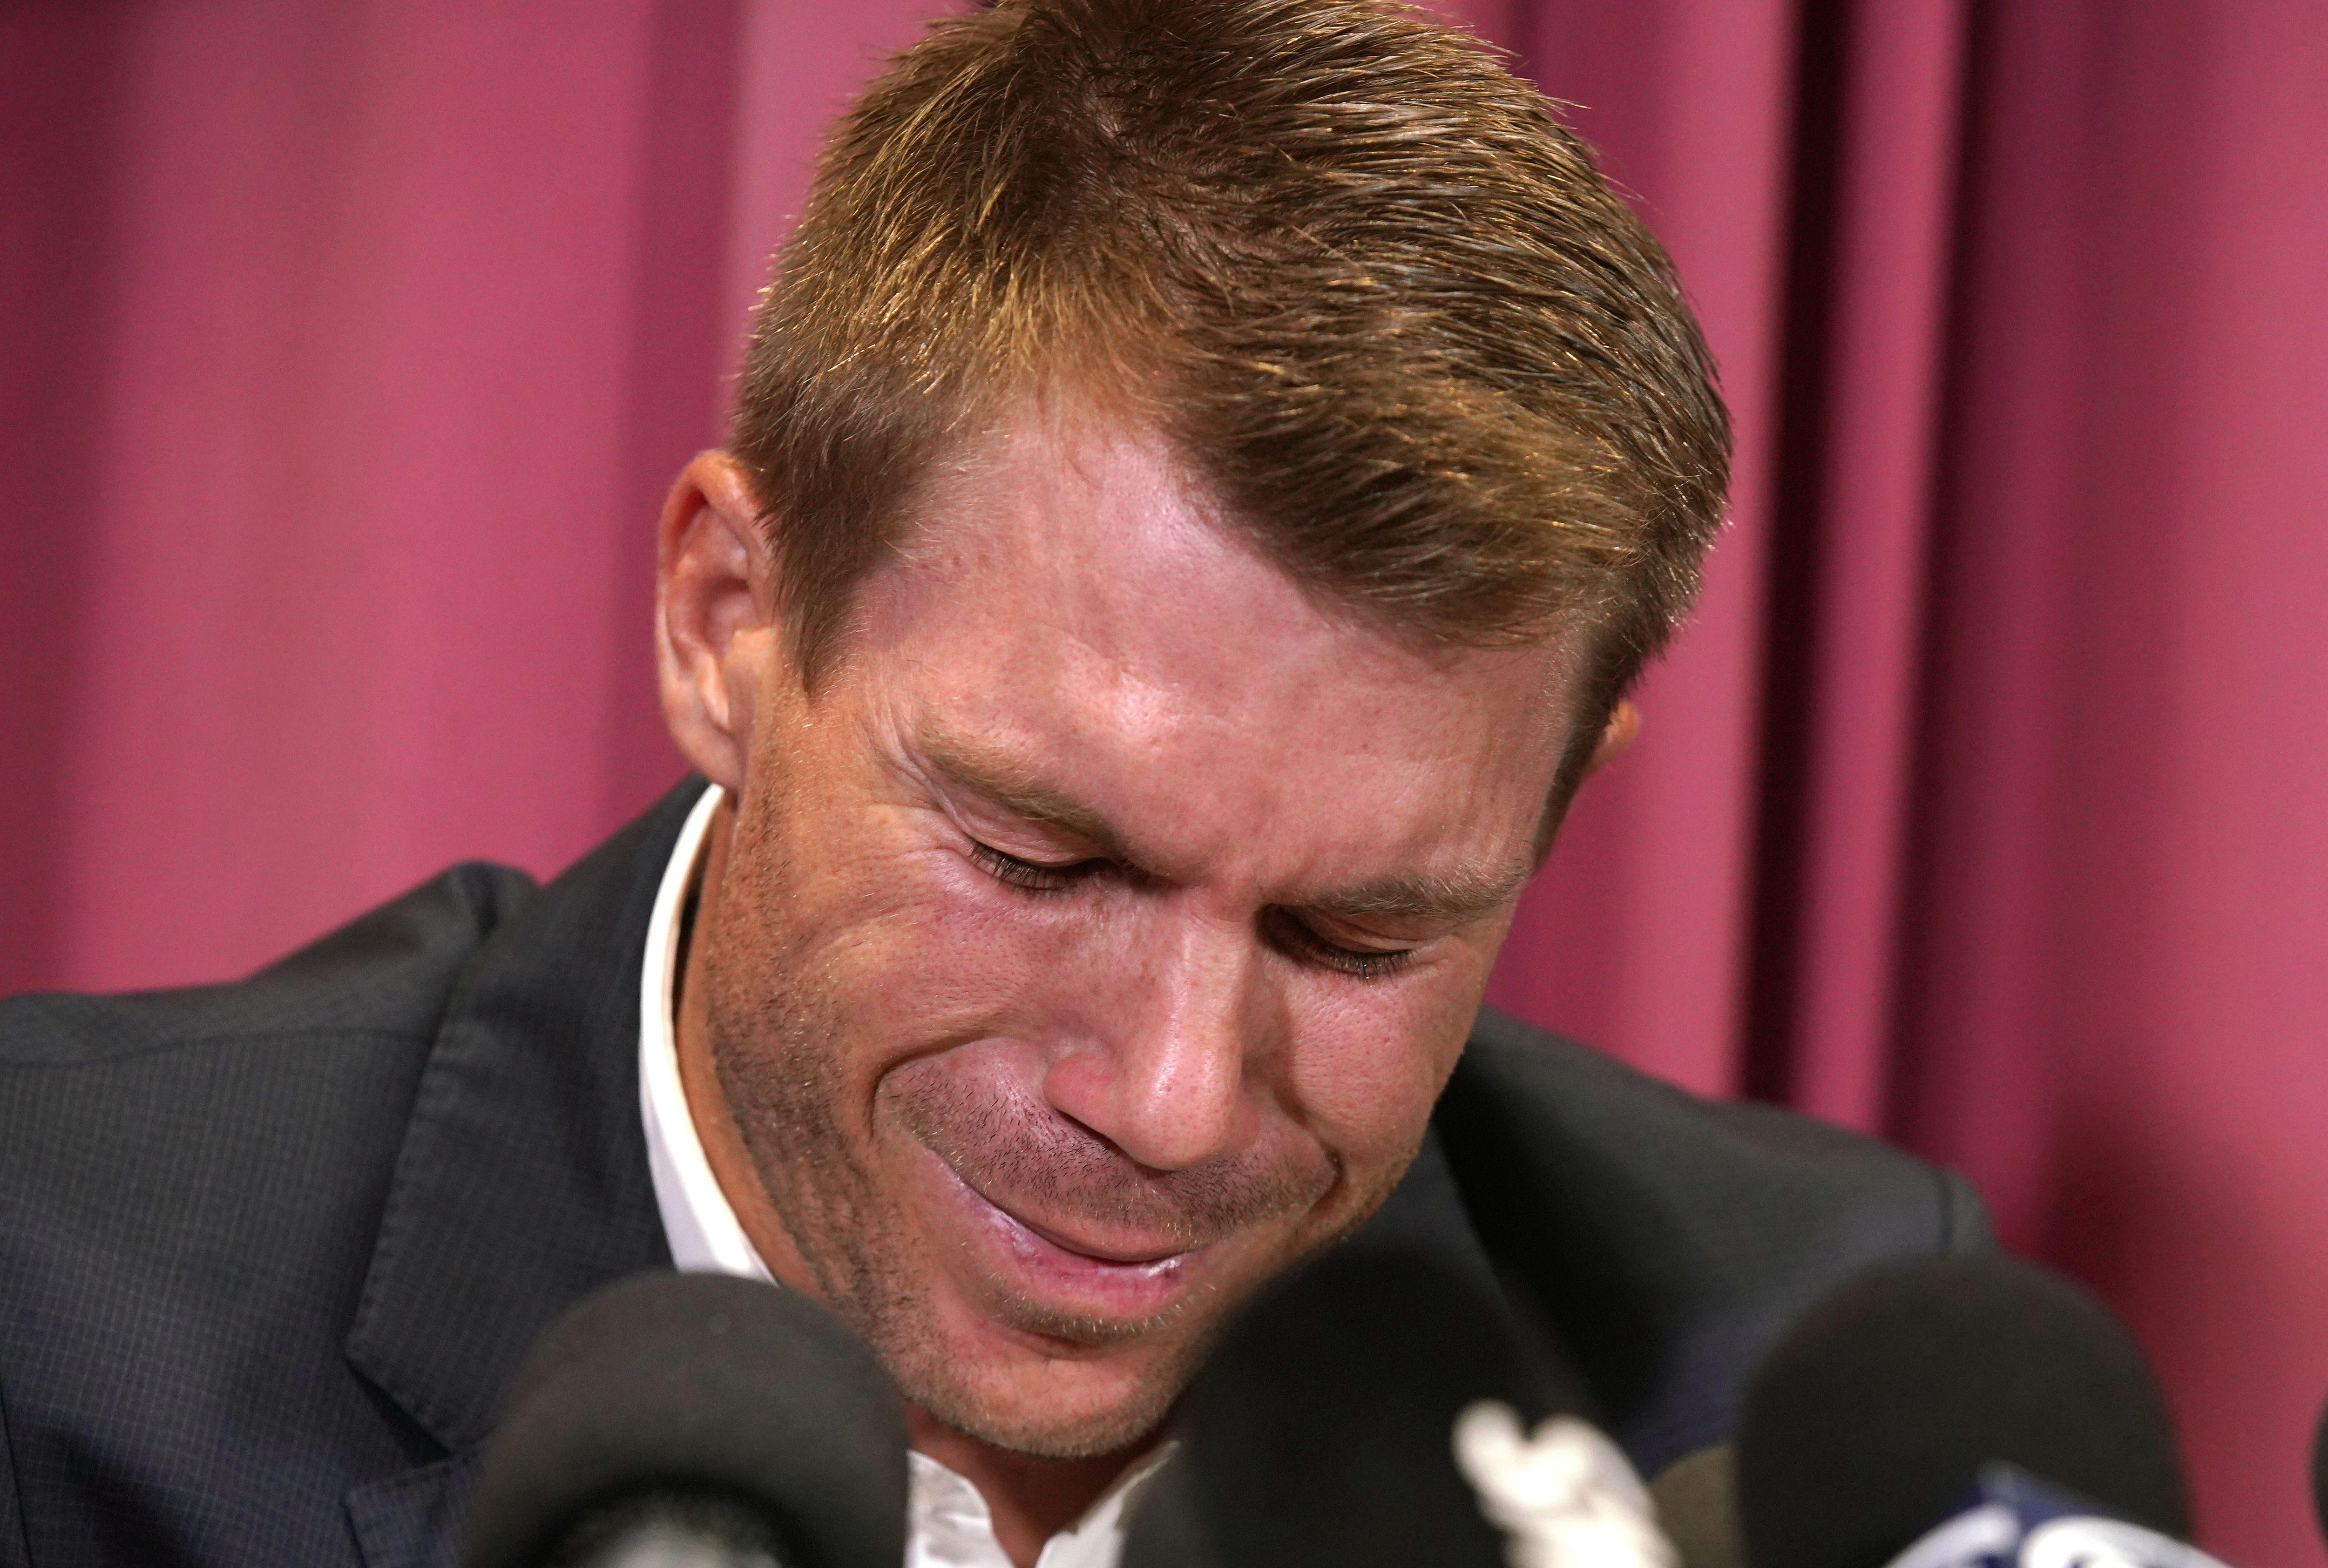 Vice-captain David Warner expresses his sorrow after also being handed a 12-month ban